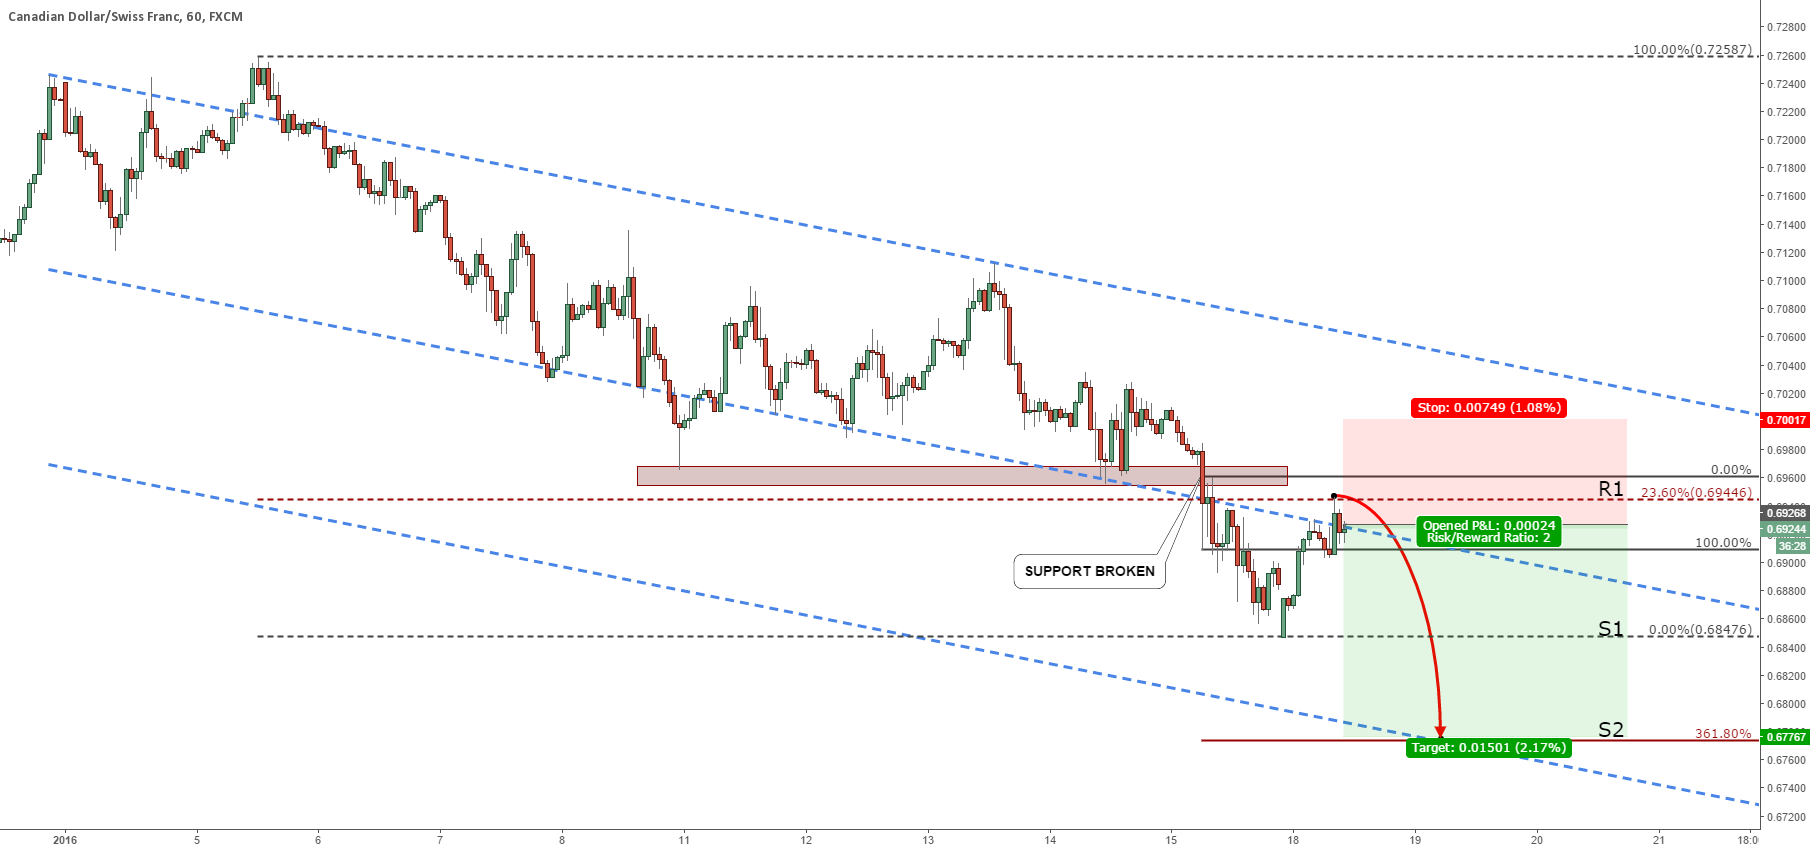 CADCHF FALL CONTINUES